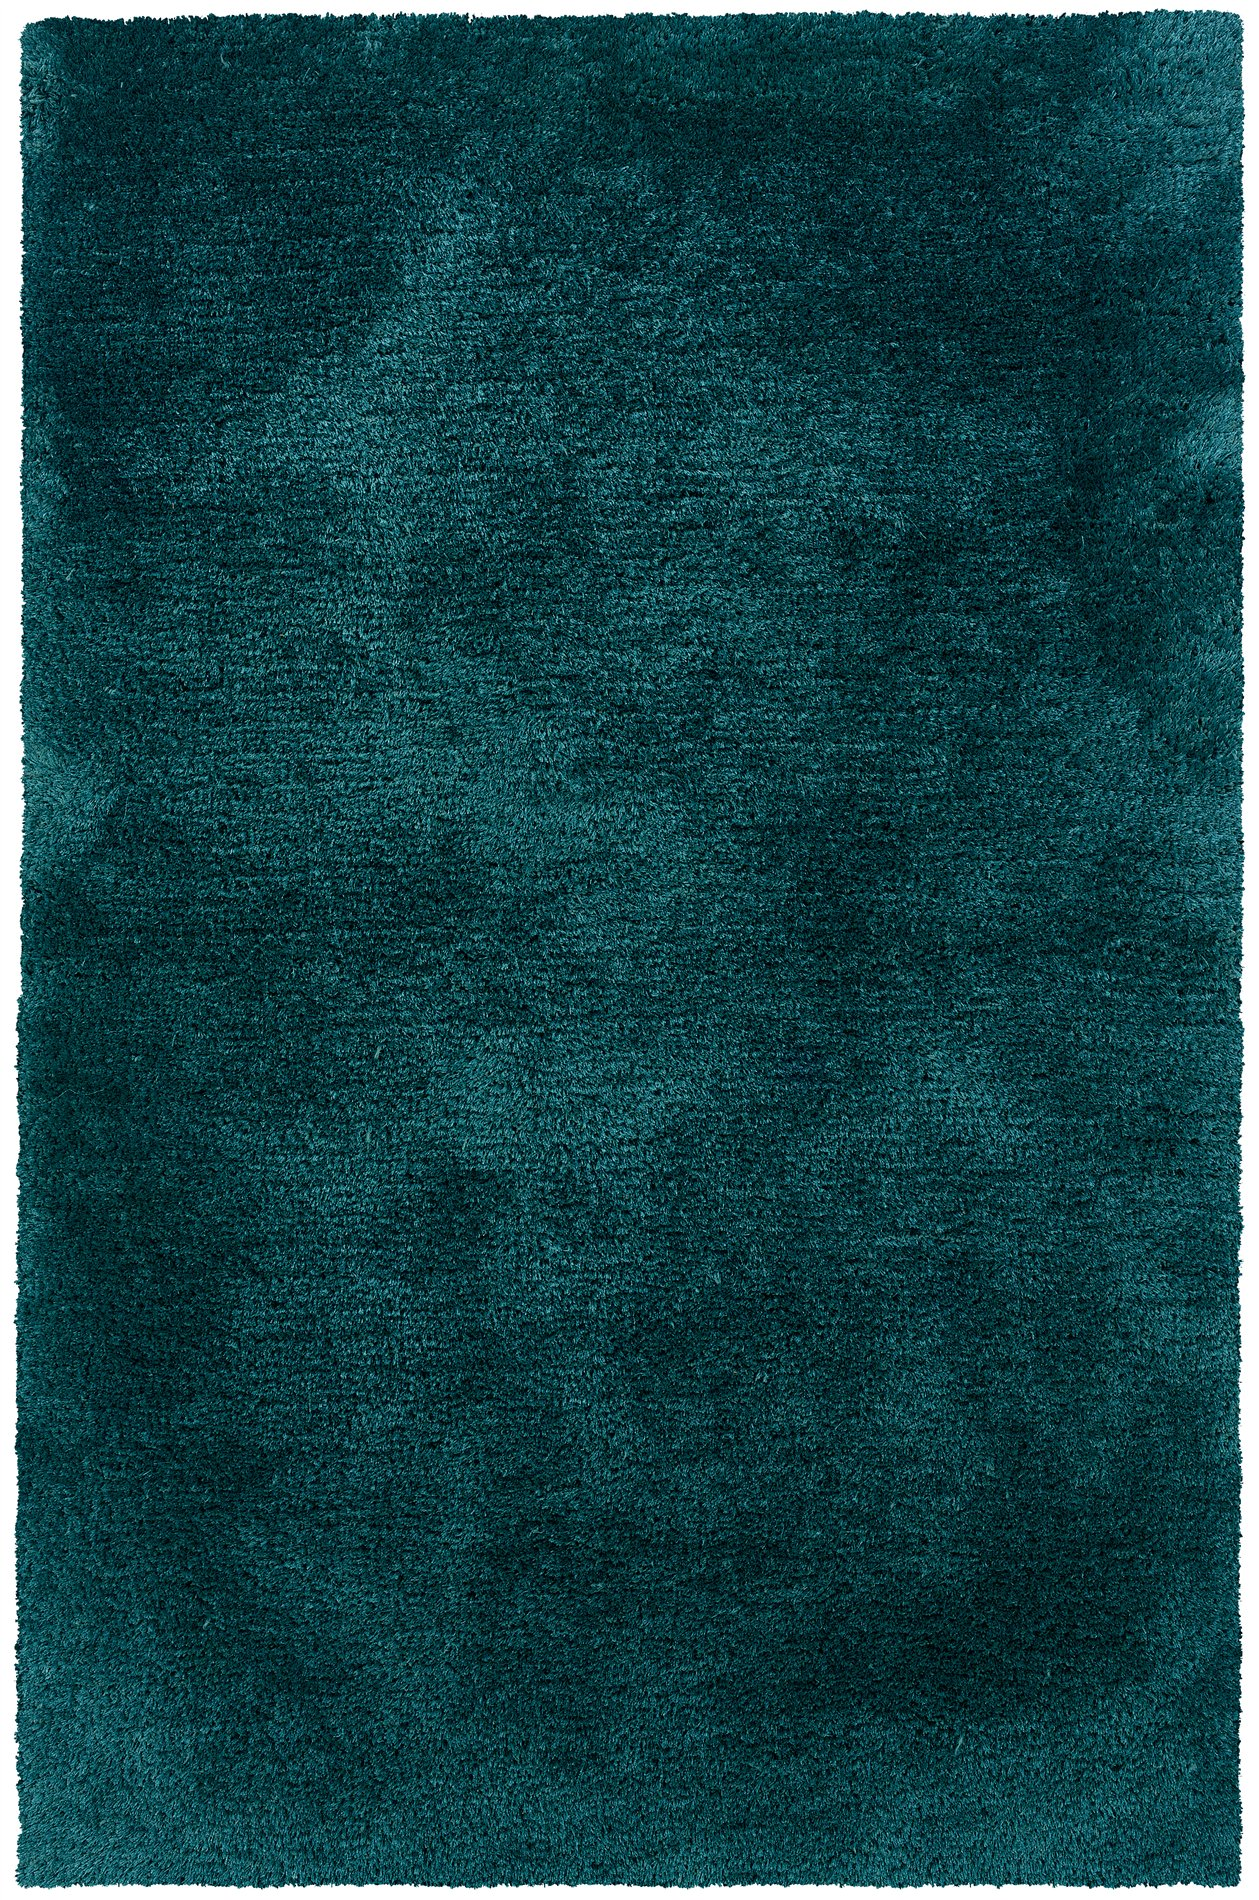 Teal Color Rugs